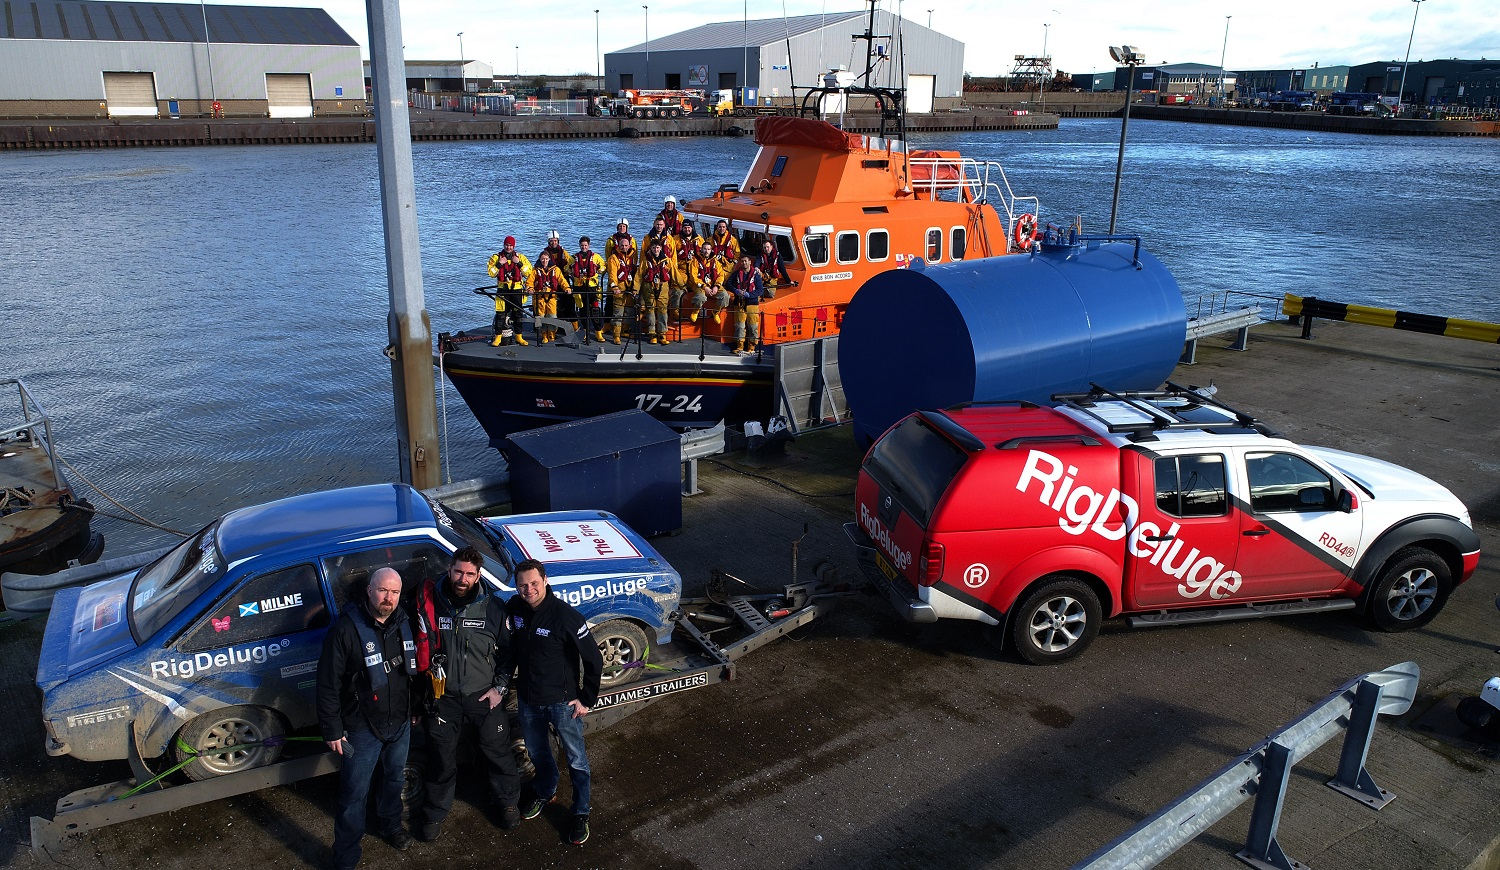 William Bird (Fennel Media), Ian Garden (RigDeluge) and rally ace Quintin Milne gather with their rally car, with Aberdeen Lifeboat crew lining the rails of their Severn class lifeboat behind